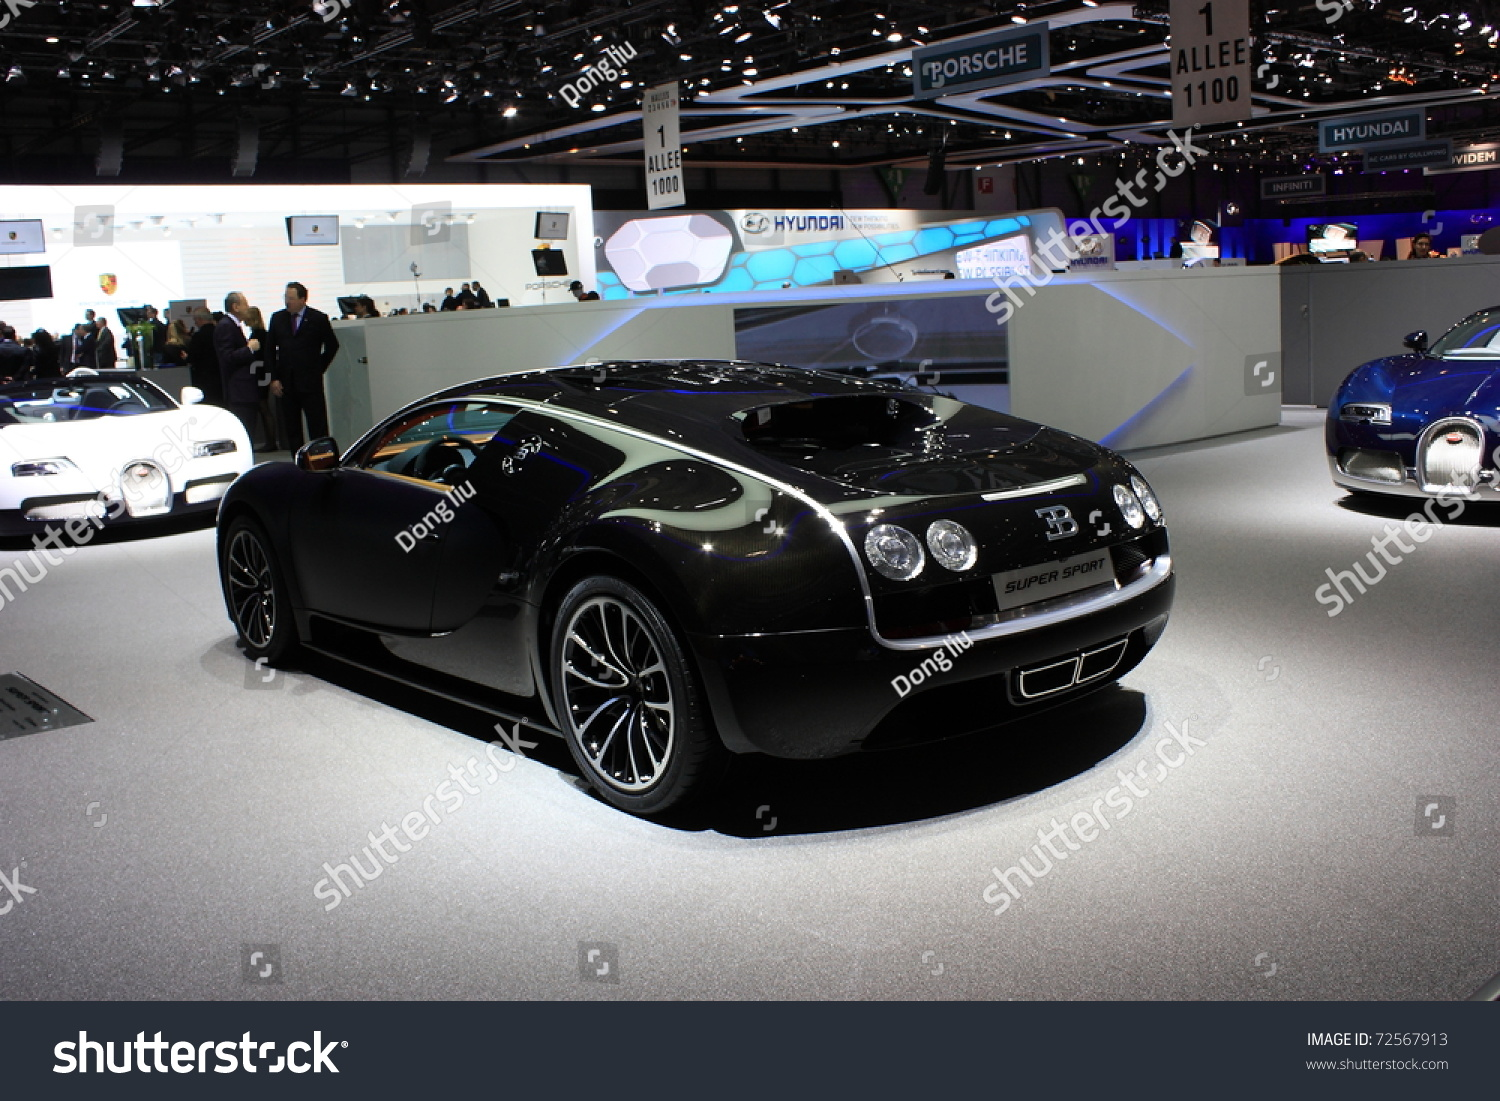 geneva switzerland march 3 a bugatti veyron super sport car on display at 81th. Black Bedroom Furniture Sets. Home Design Ideas